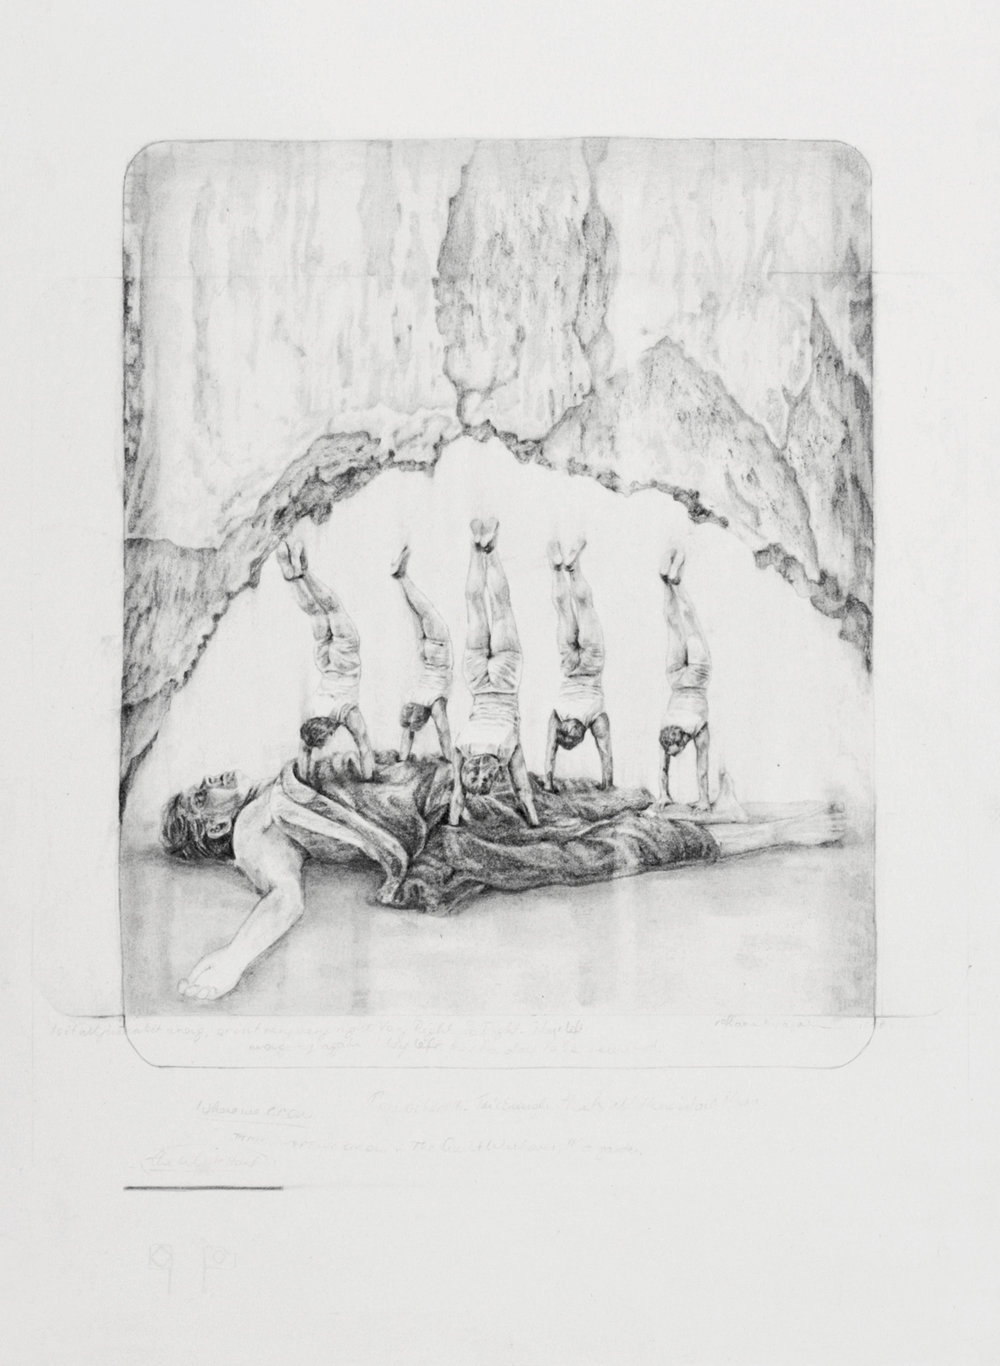 'The quiet walkover' (detail) - graphite and carbon pencil on paper, 28x38cm, 2011